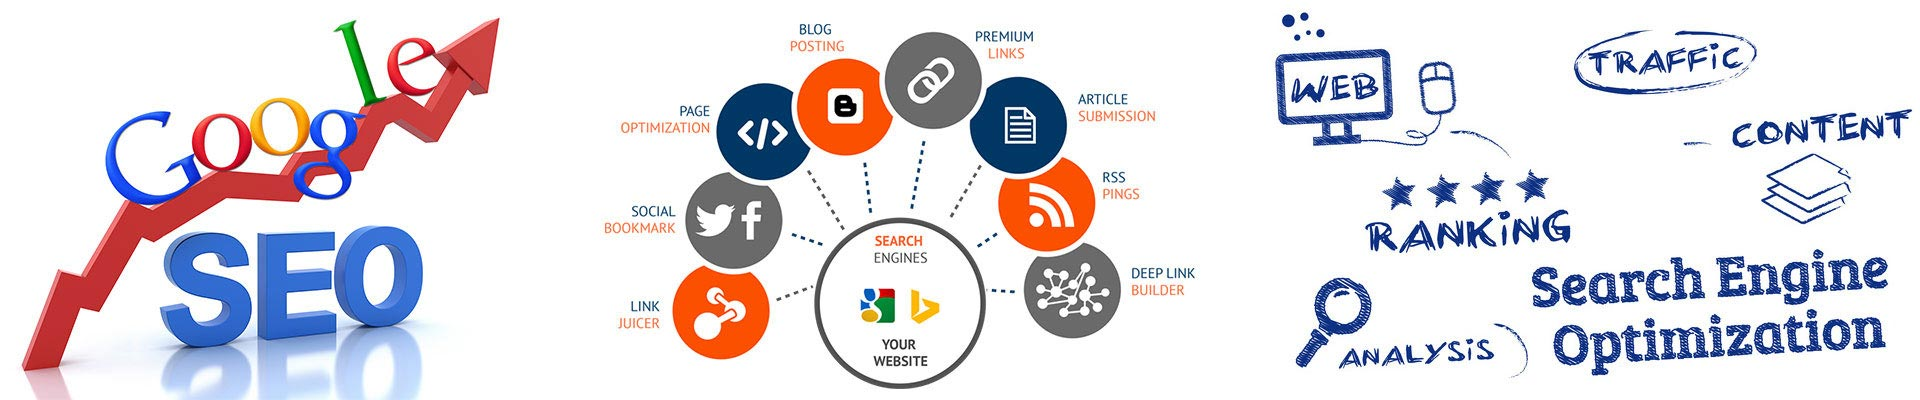 Search Engine Optimization Services Provided